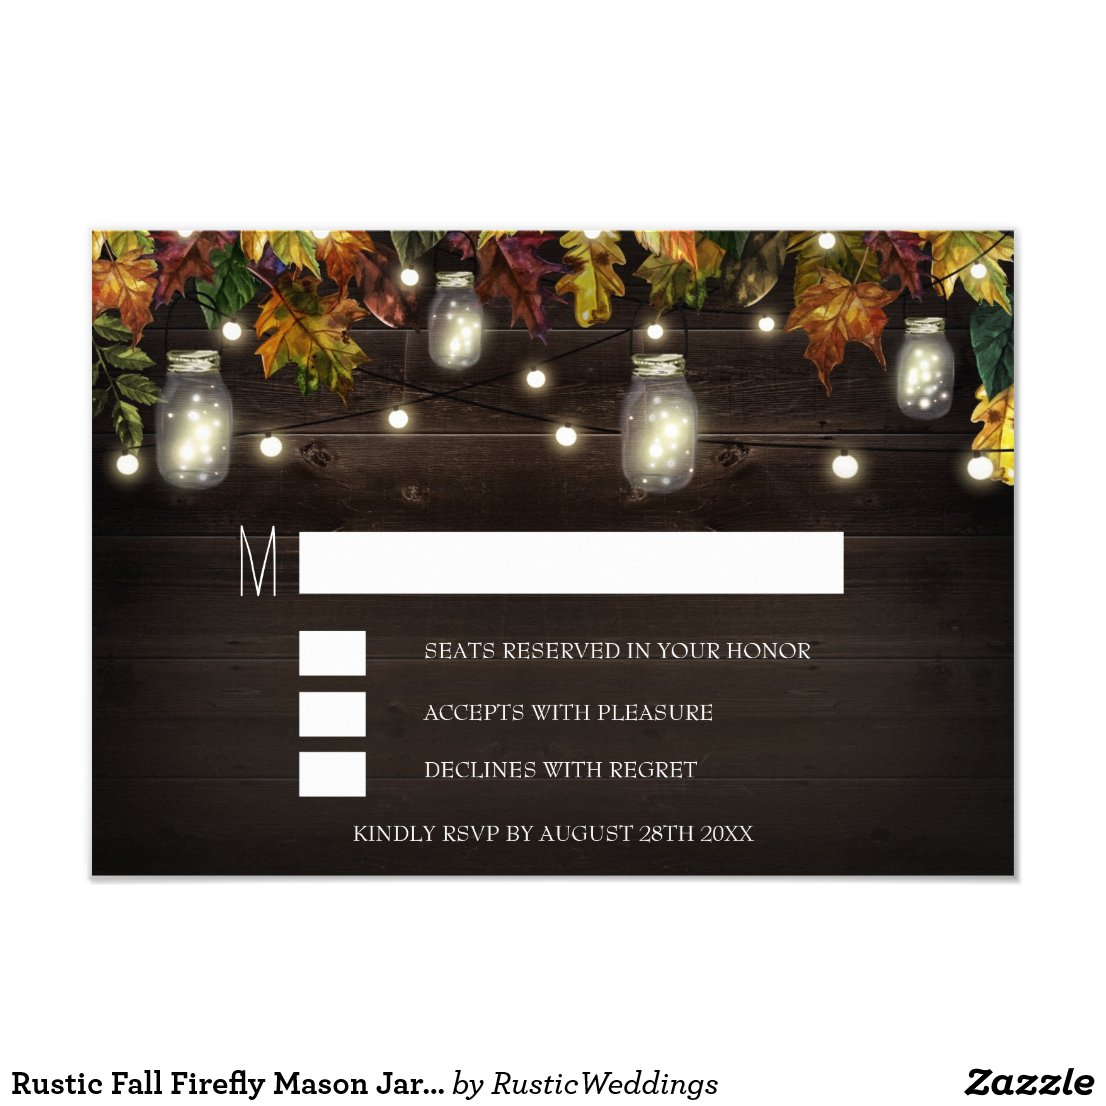 Rustic Fall Firefly Mason Jar Wedding RSVP Cards